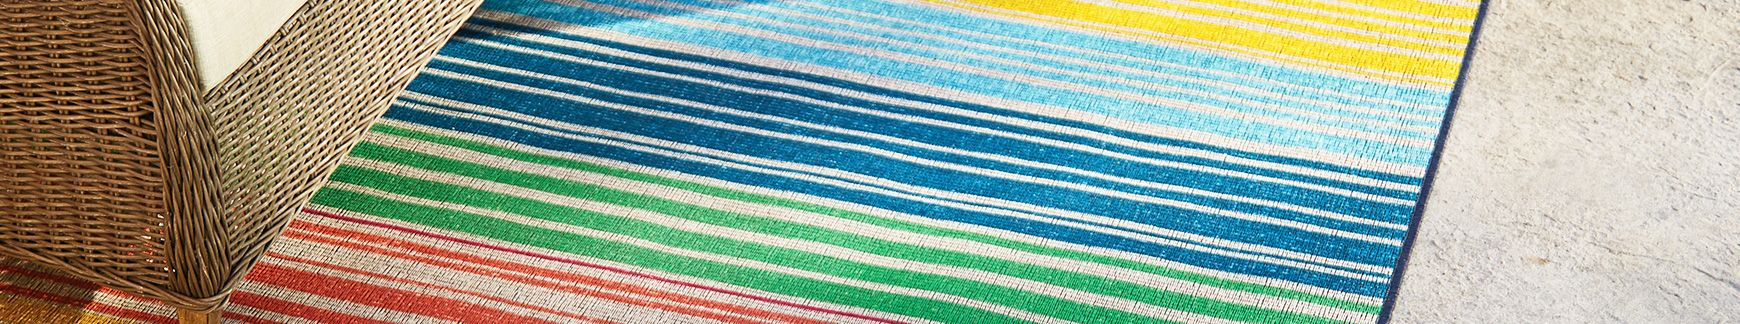 rugs rug decorative clearance lowes area medium remnants room size carpet of living discount at unbelievable walmart outdoor